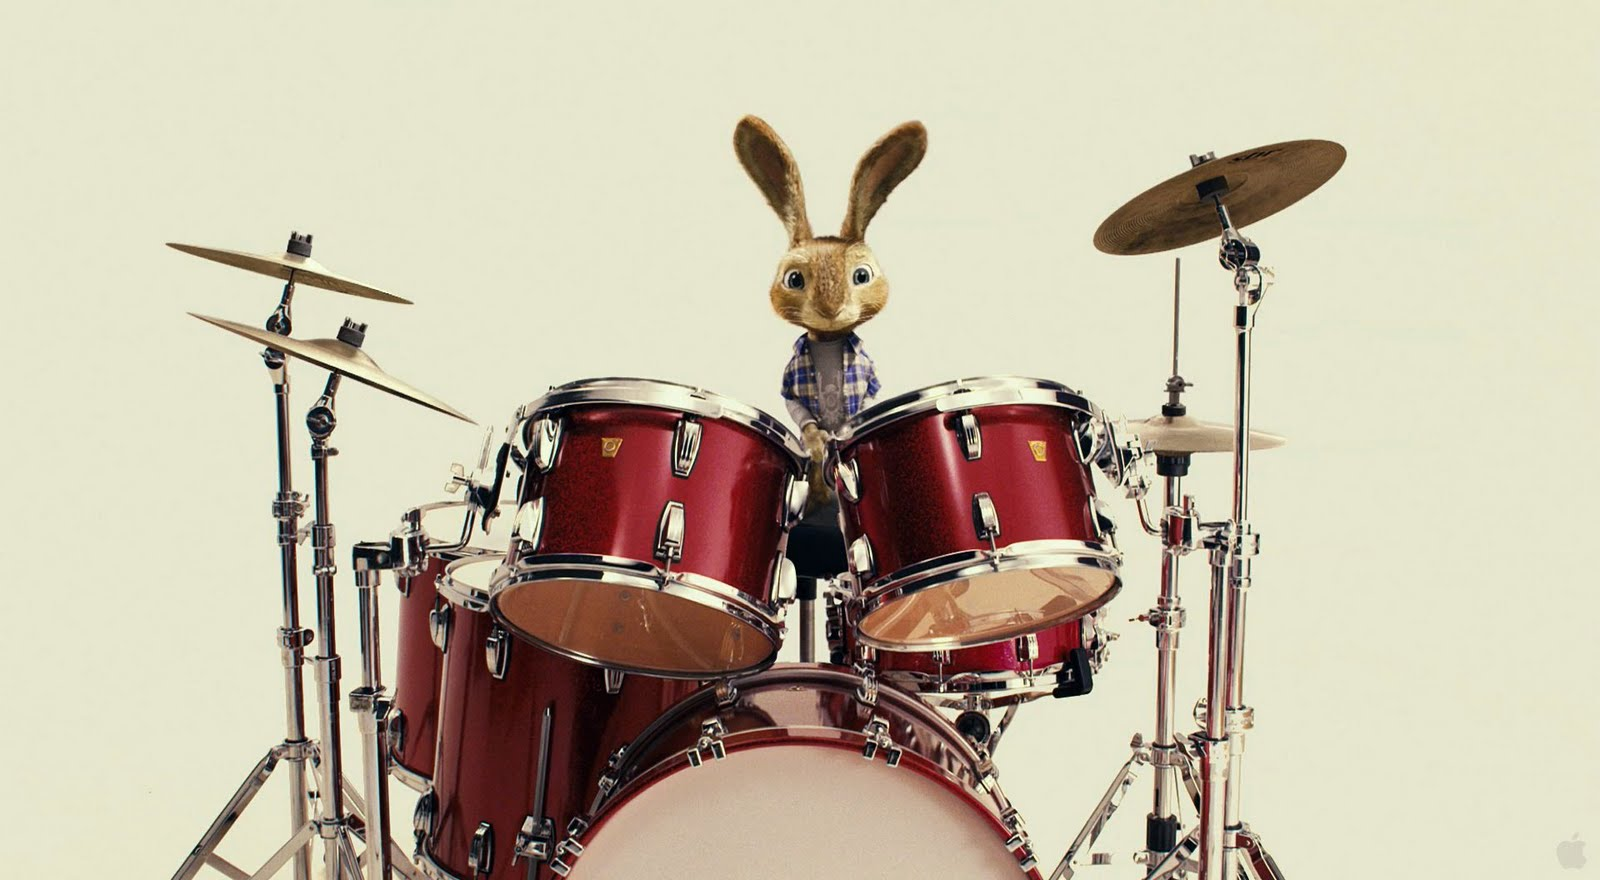 Easter Bunny Wallpaper Desktop Drums